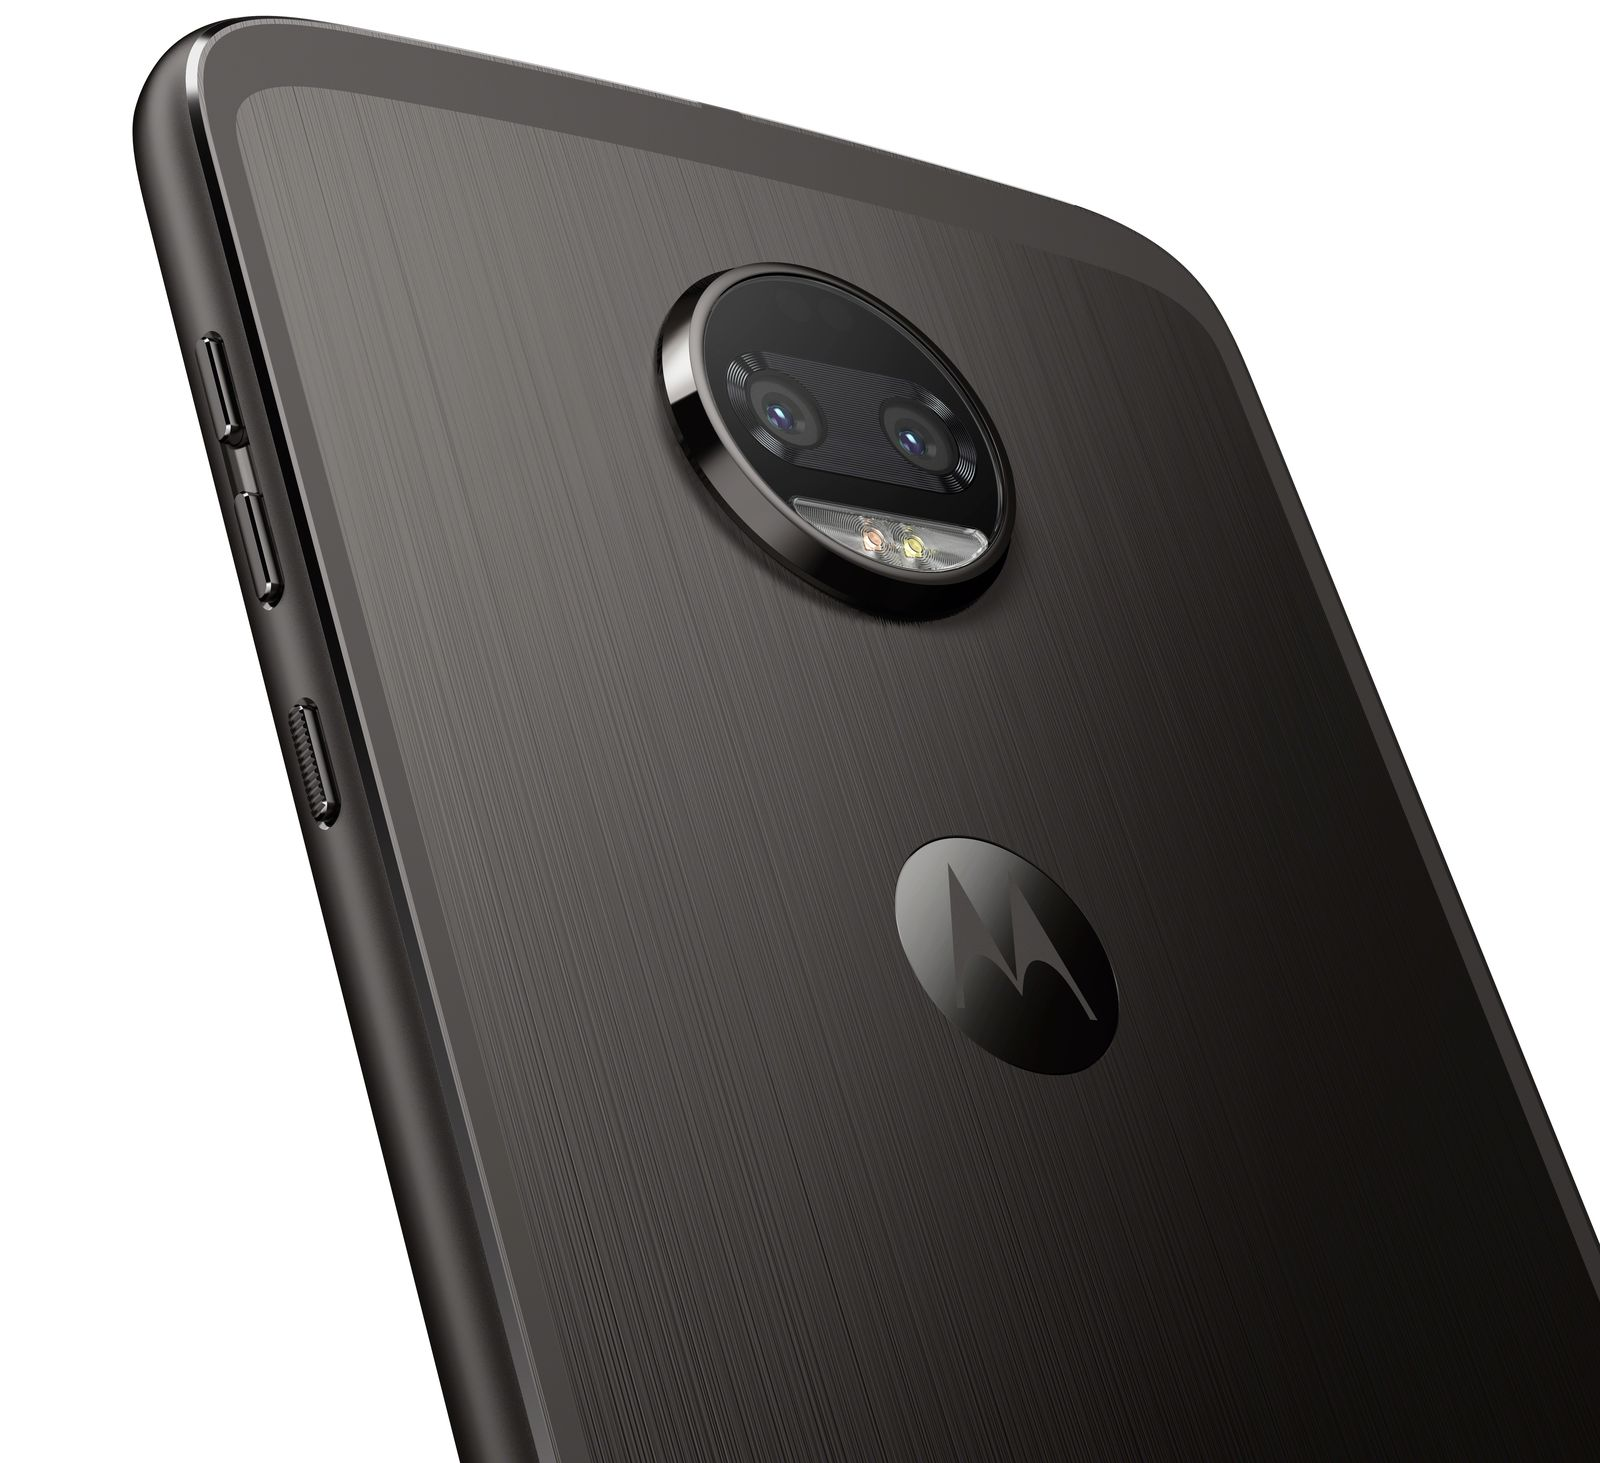 Moto Z2 Force to achieve rare combo of tough yet smart